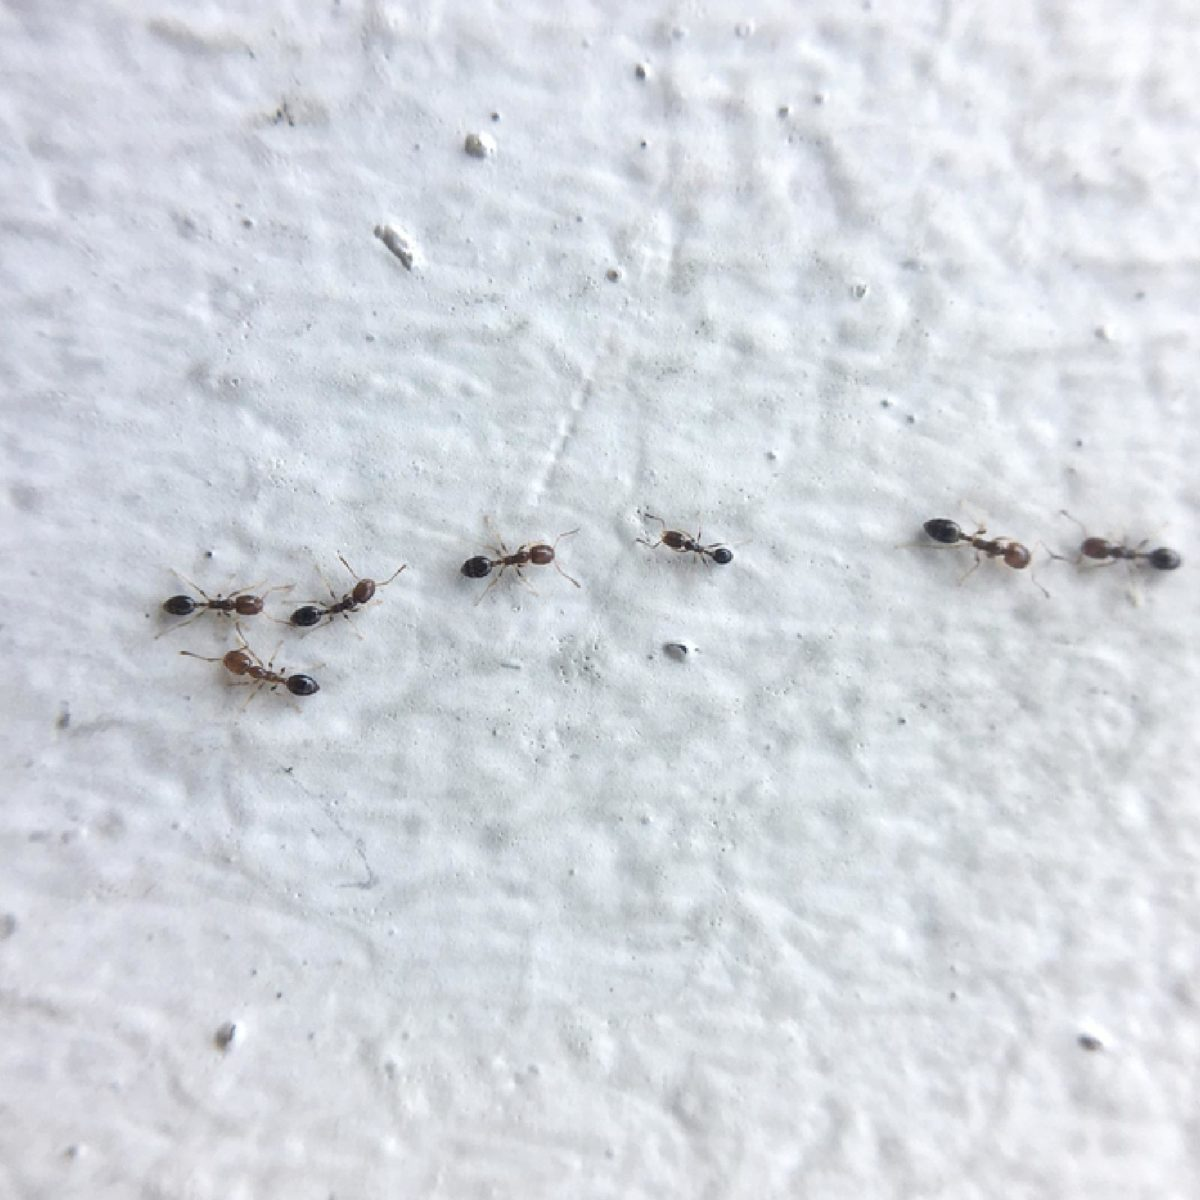 Ant Control Tips to Get Rid of Ants (Without an Exterminator ...